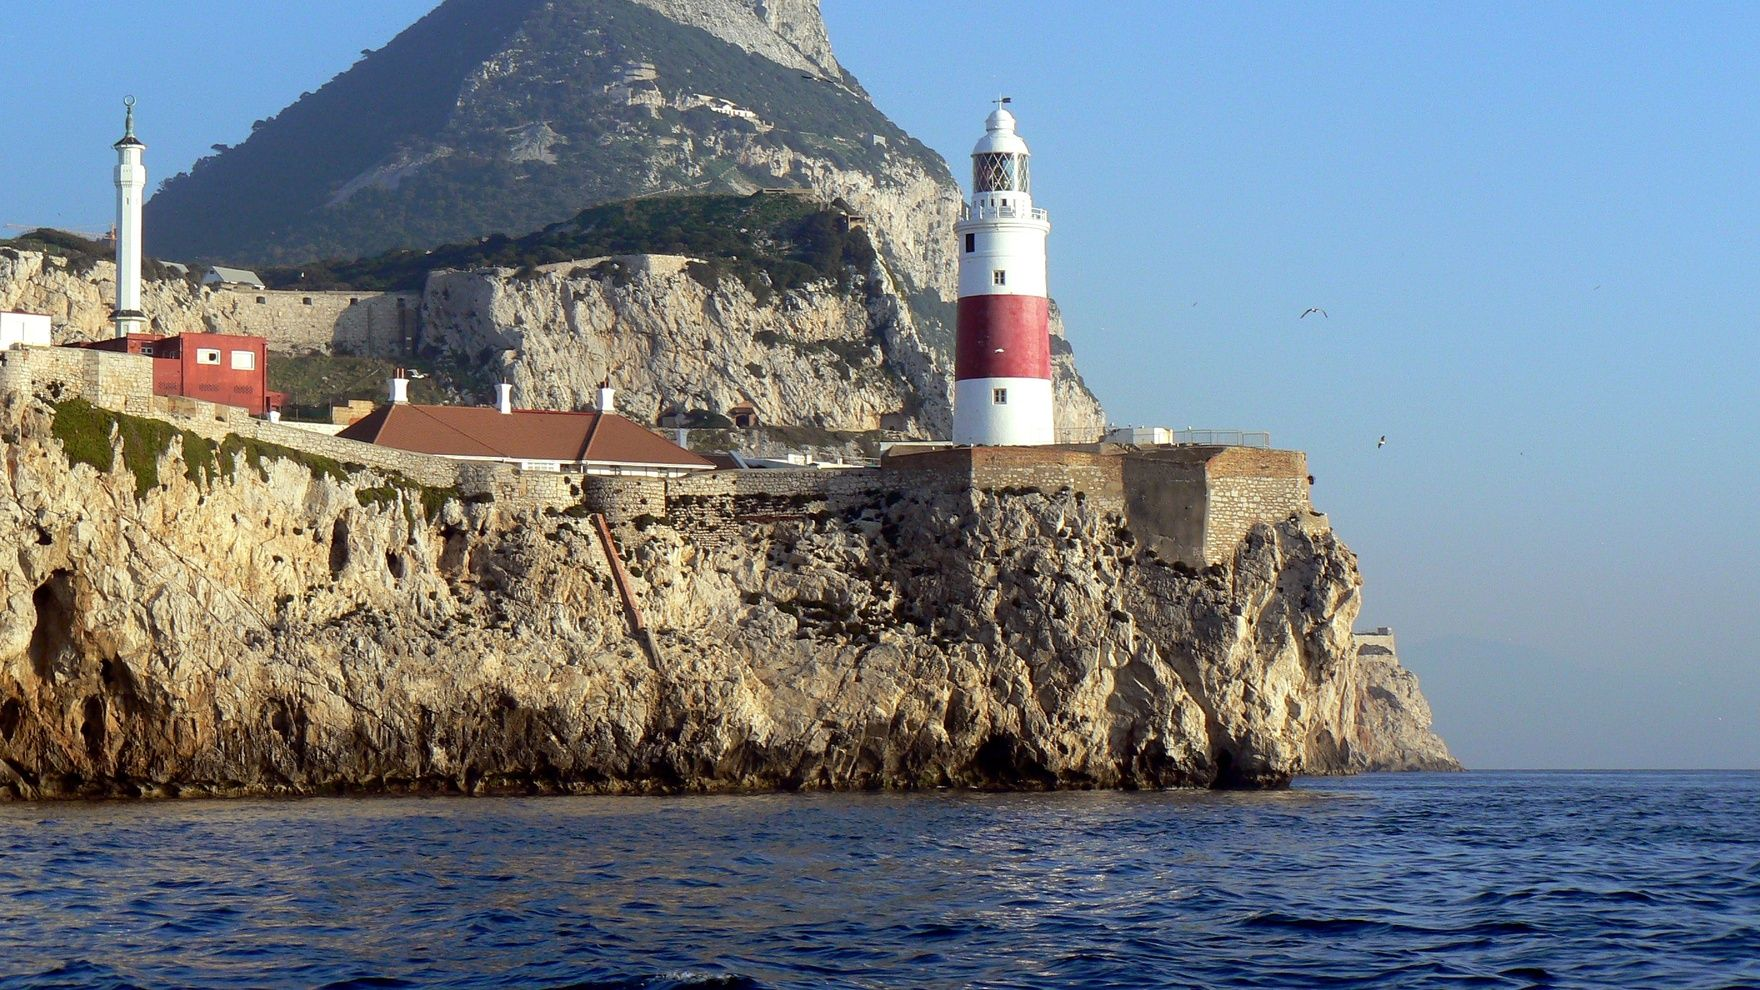 Mile building: Gibraltar to Canaries